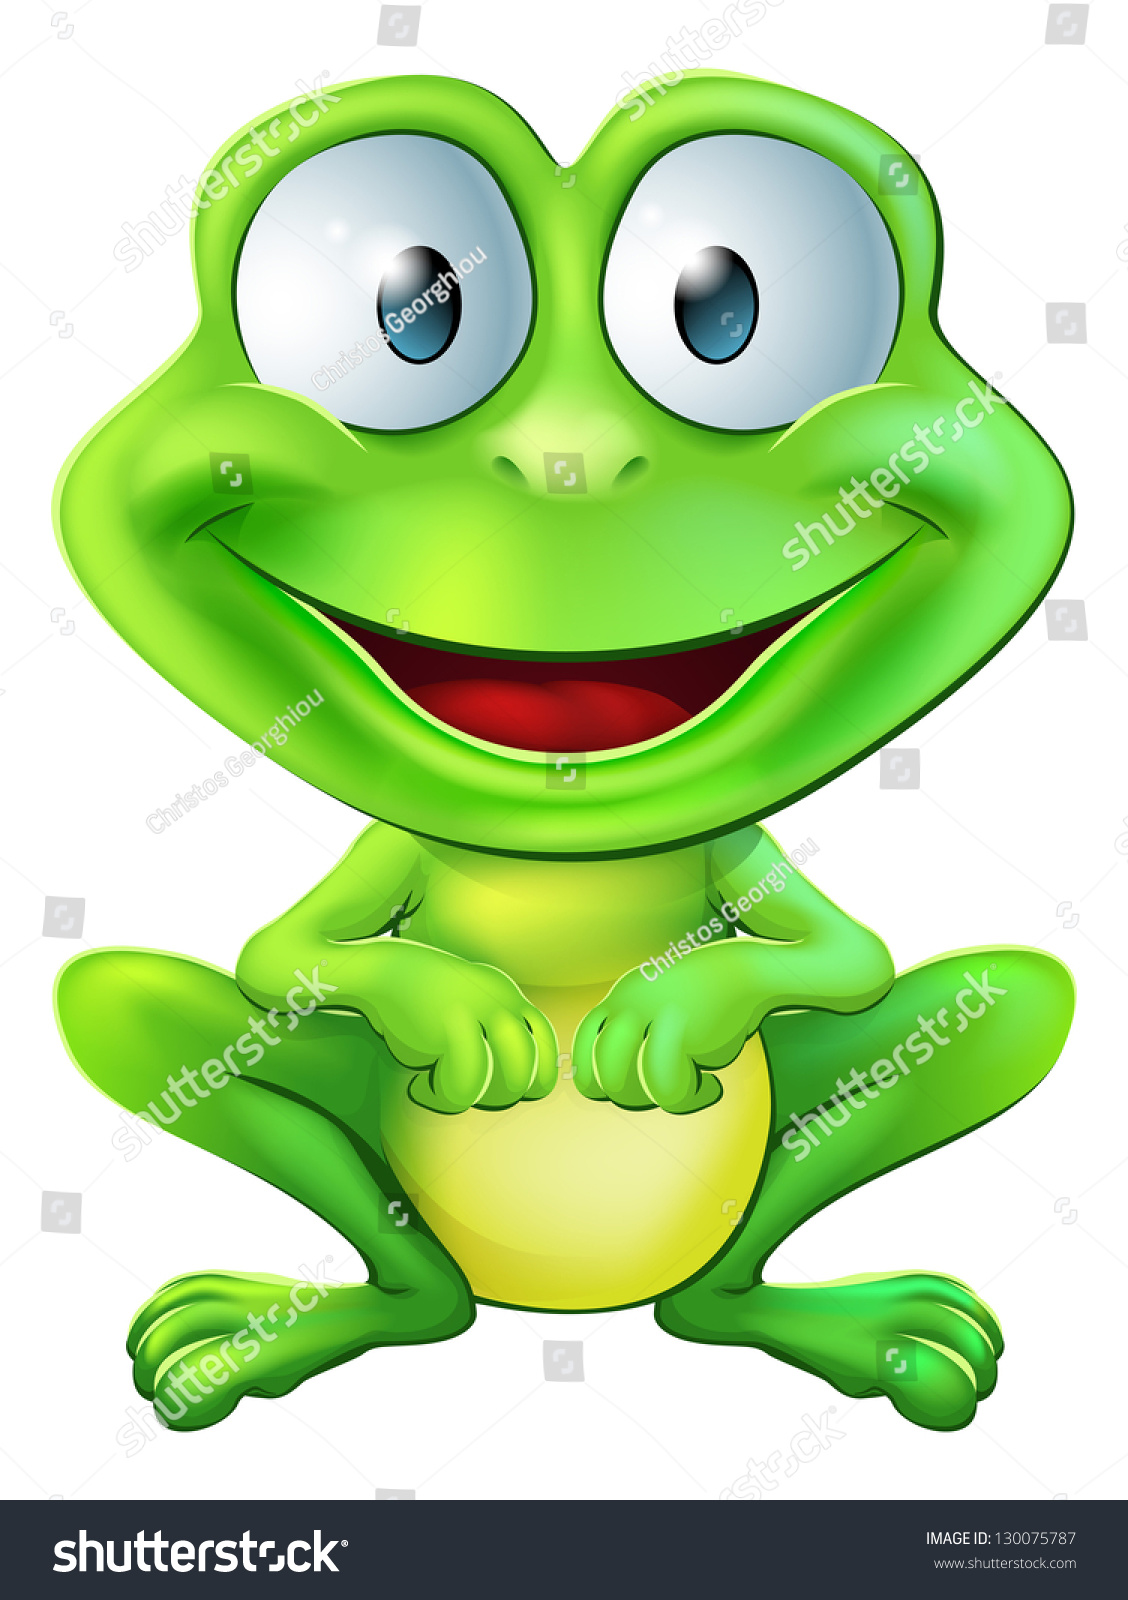 Smiling Frog Png - An illustration of a green cute frog character sitting and smiling